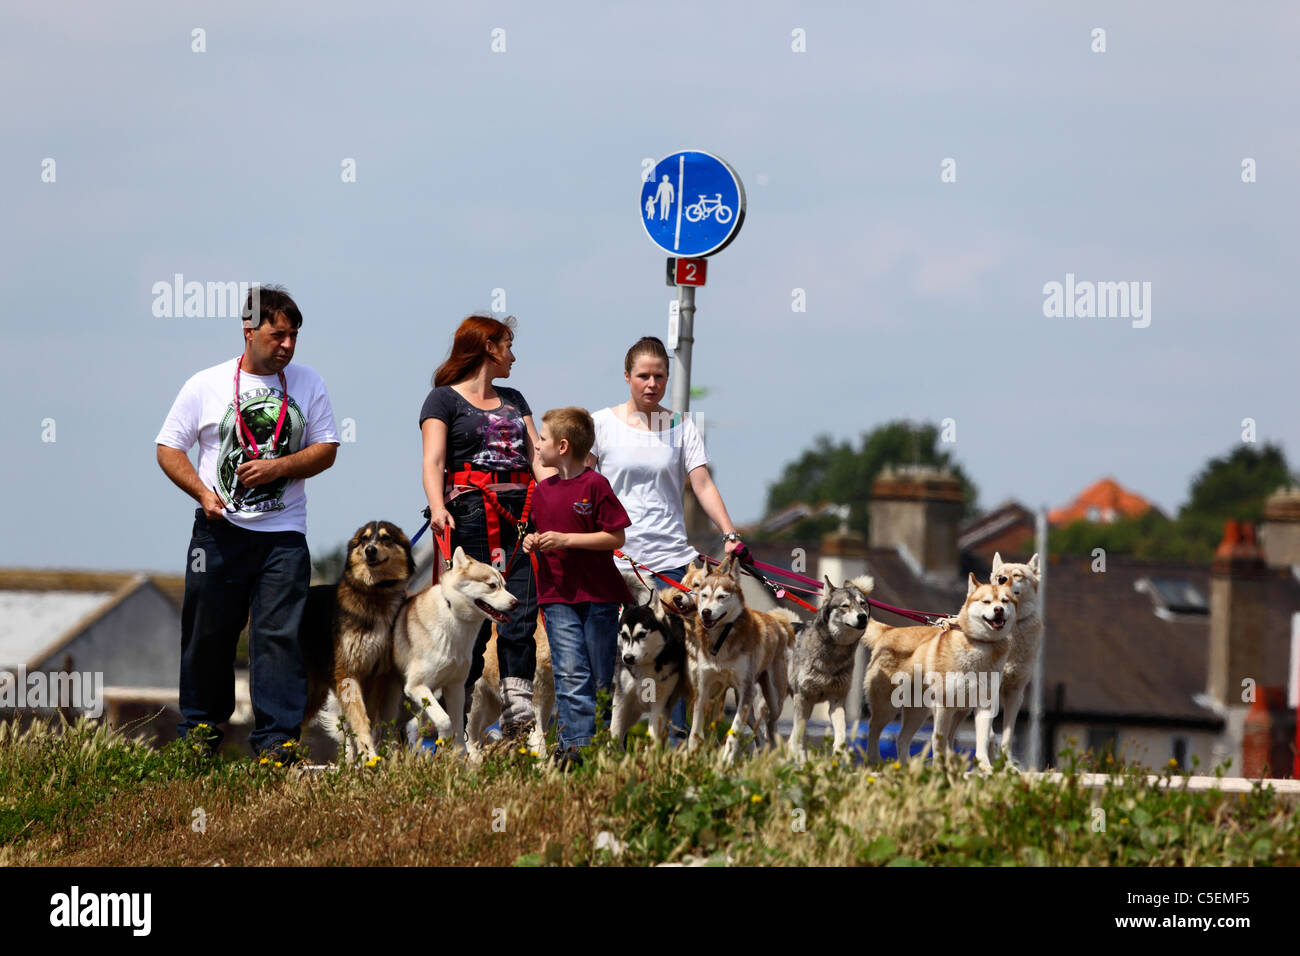 Family walking dogs along street in housing estate, St Leonards on Sea, East Sussex, England Stock Photo